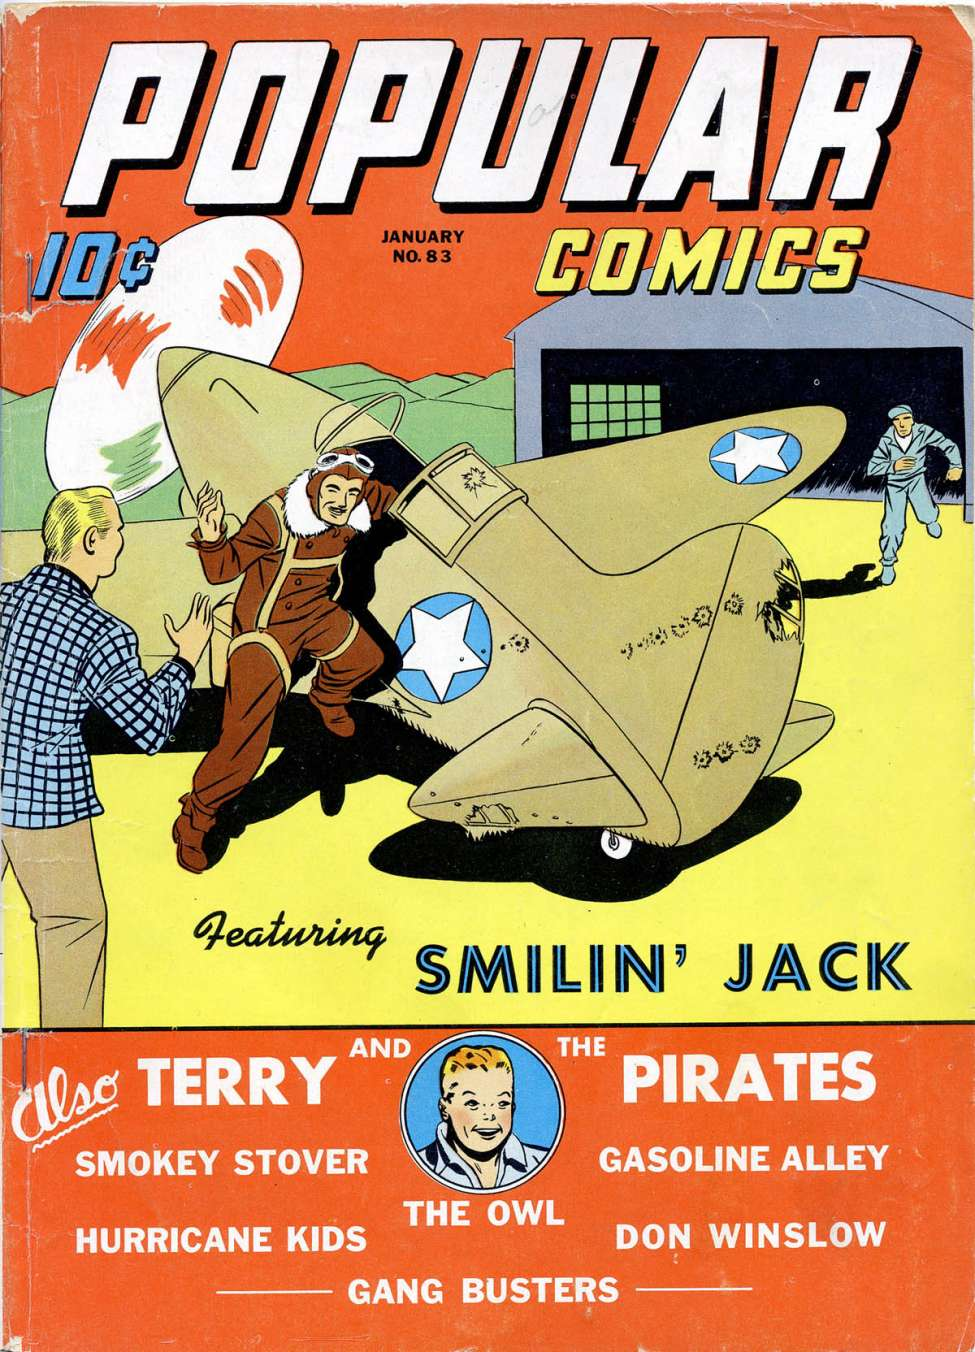 Comic Book Cover For Popular Comics #83